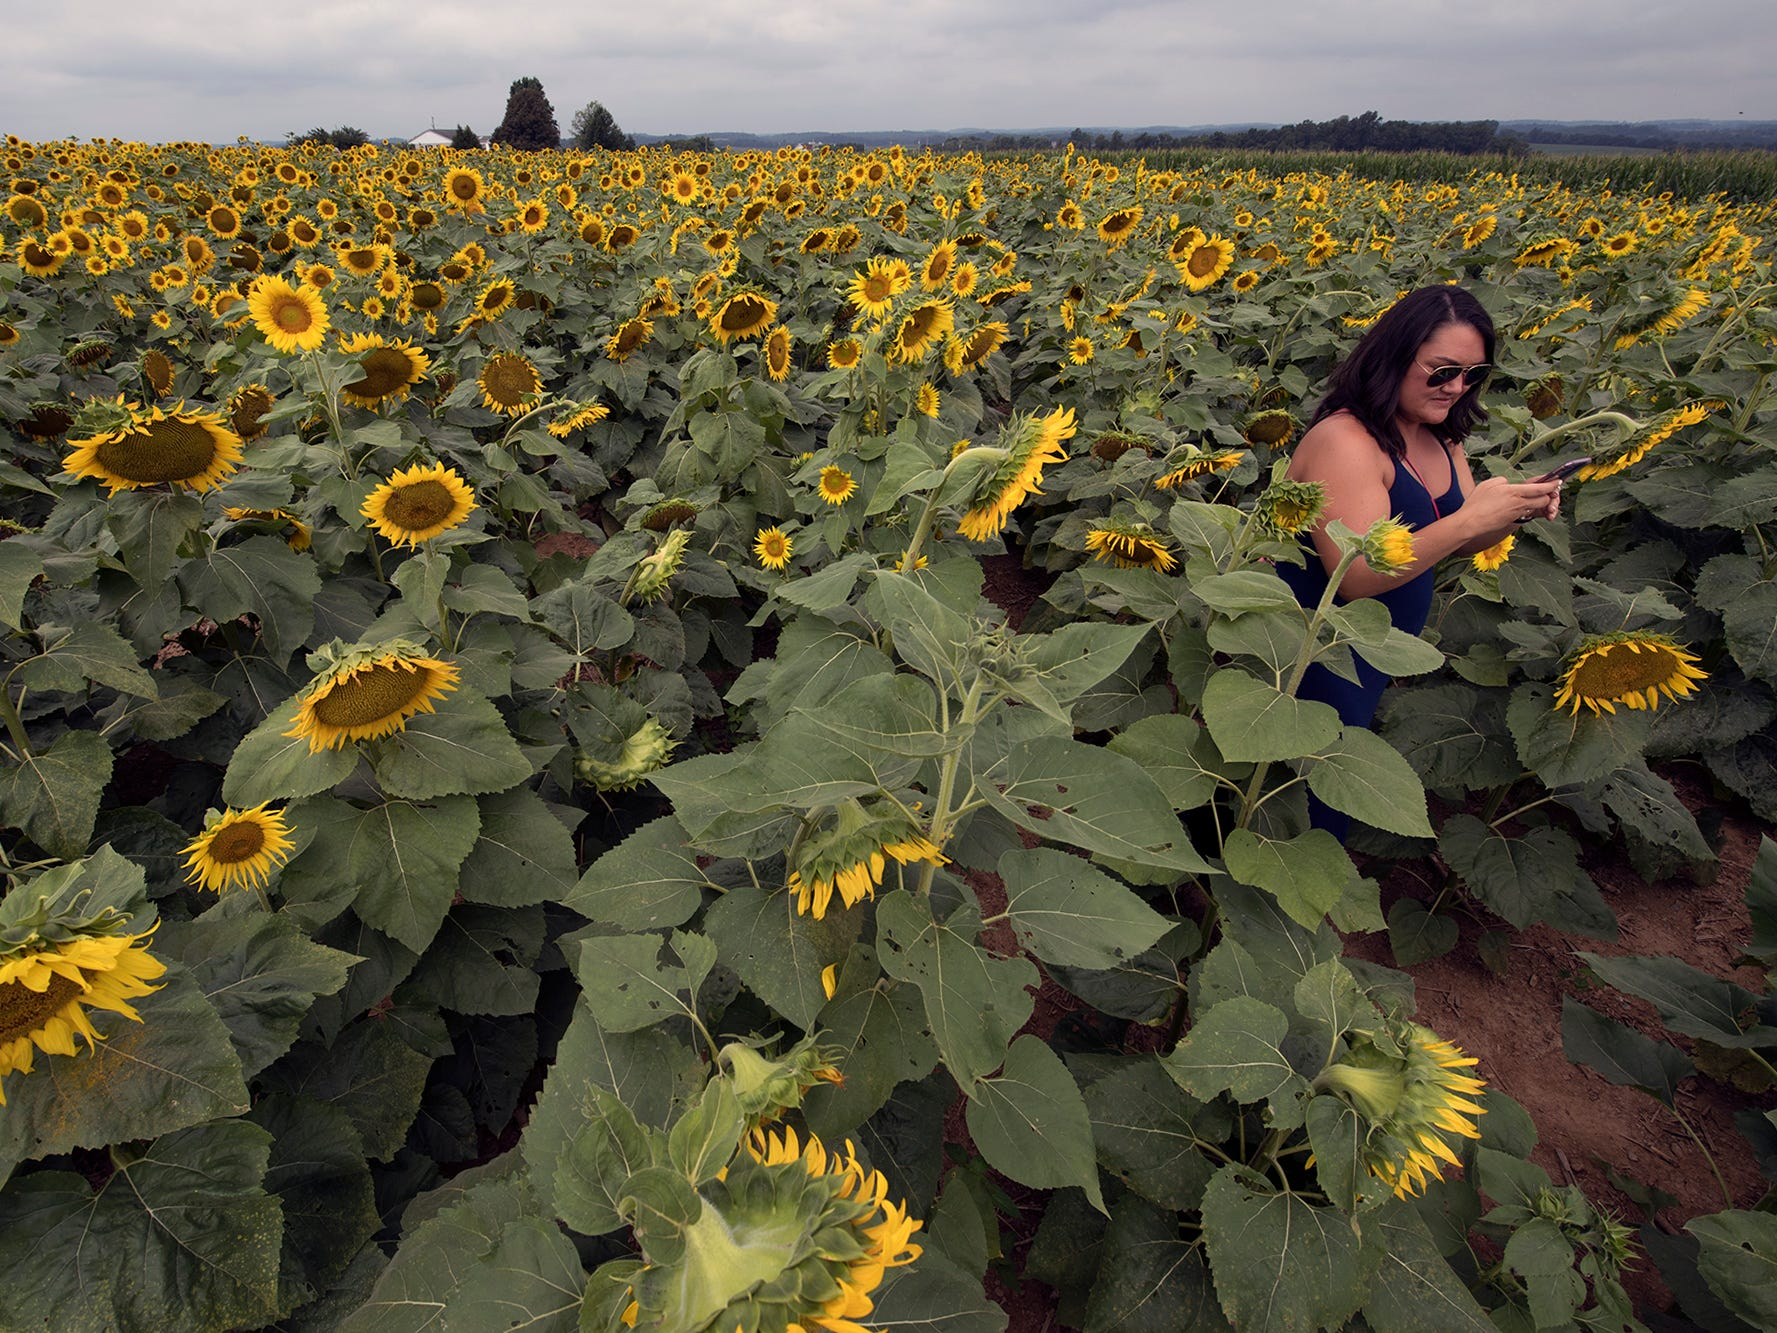 A person in a field of 10 acres of sunflowers during the 2nd Annual Sunflower Festival at Maple Lawn Farms near New Park.